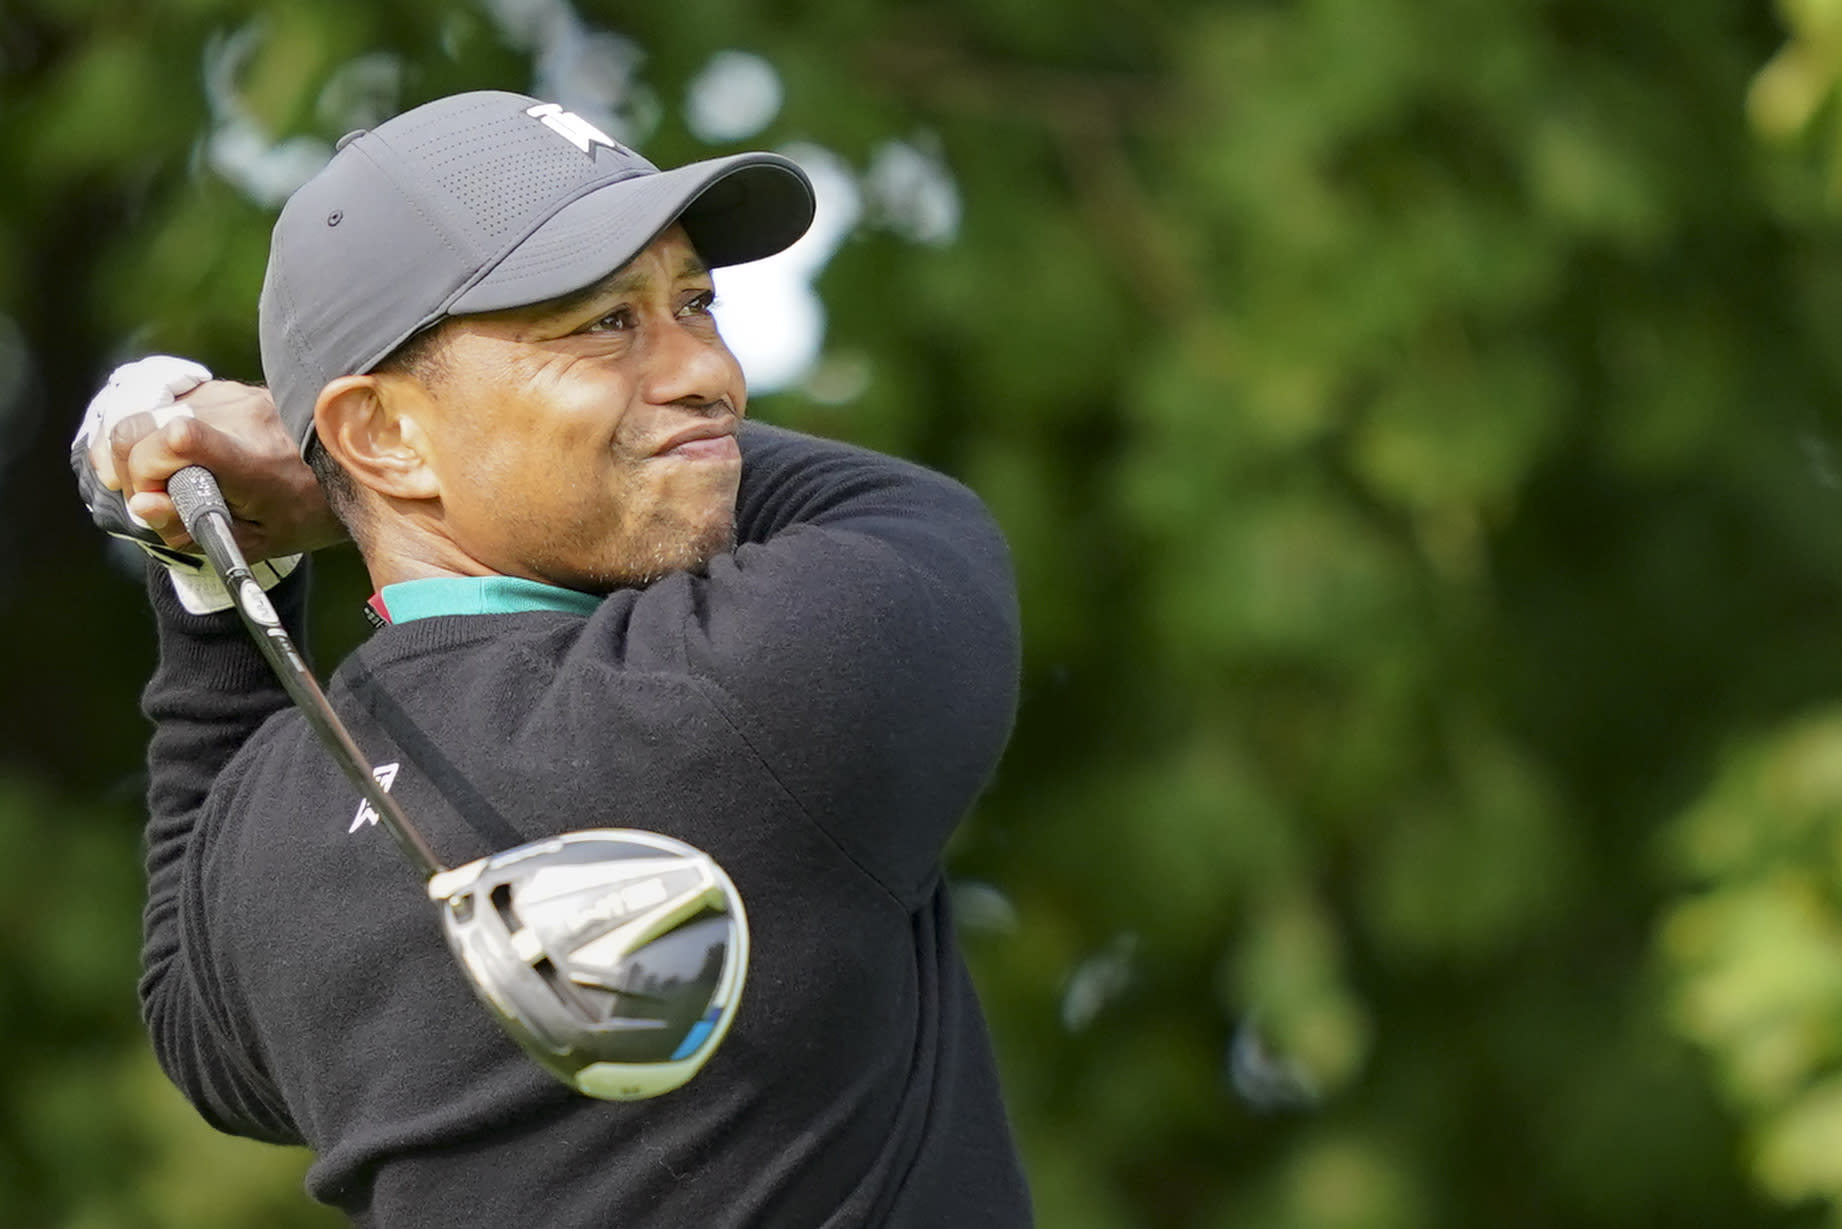 Tiger Woods watches his shot off the 12th tee during practice before the U.S. Open Championship golf tournament at Winged Foot Golf Club, Tuesday, Sept. 15, 2020, in Mamaroneck, N.Y. (AP Photo/John Minchillo)